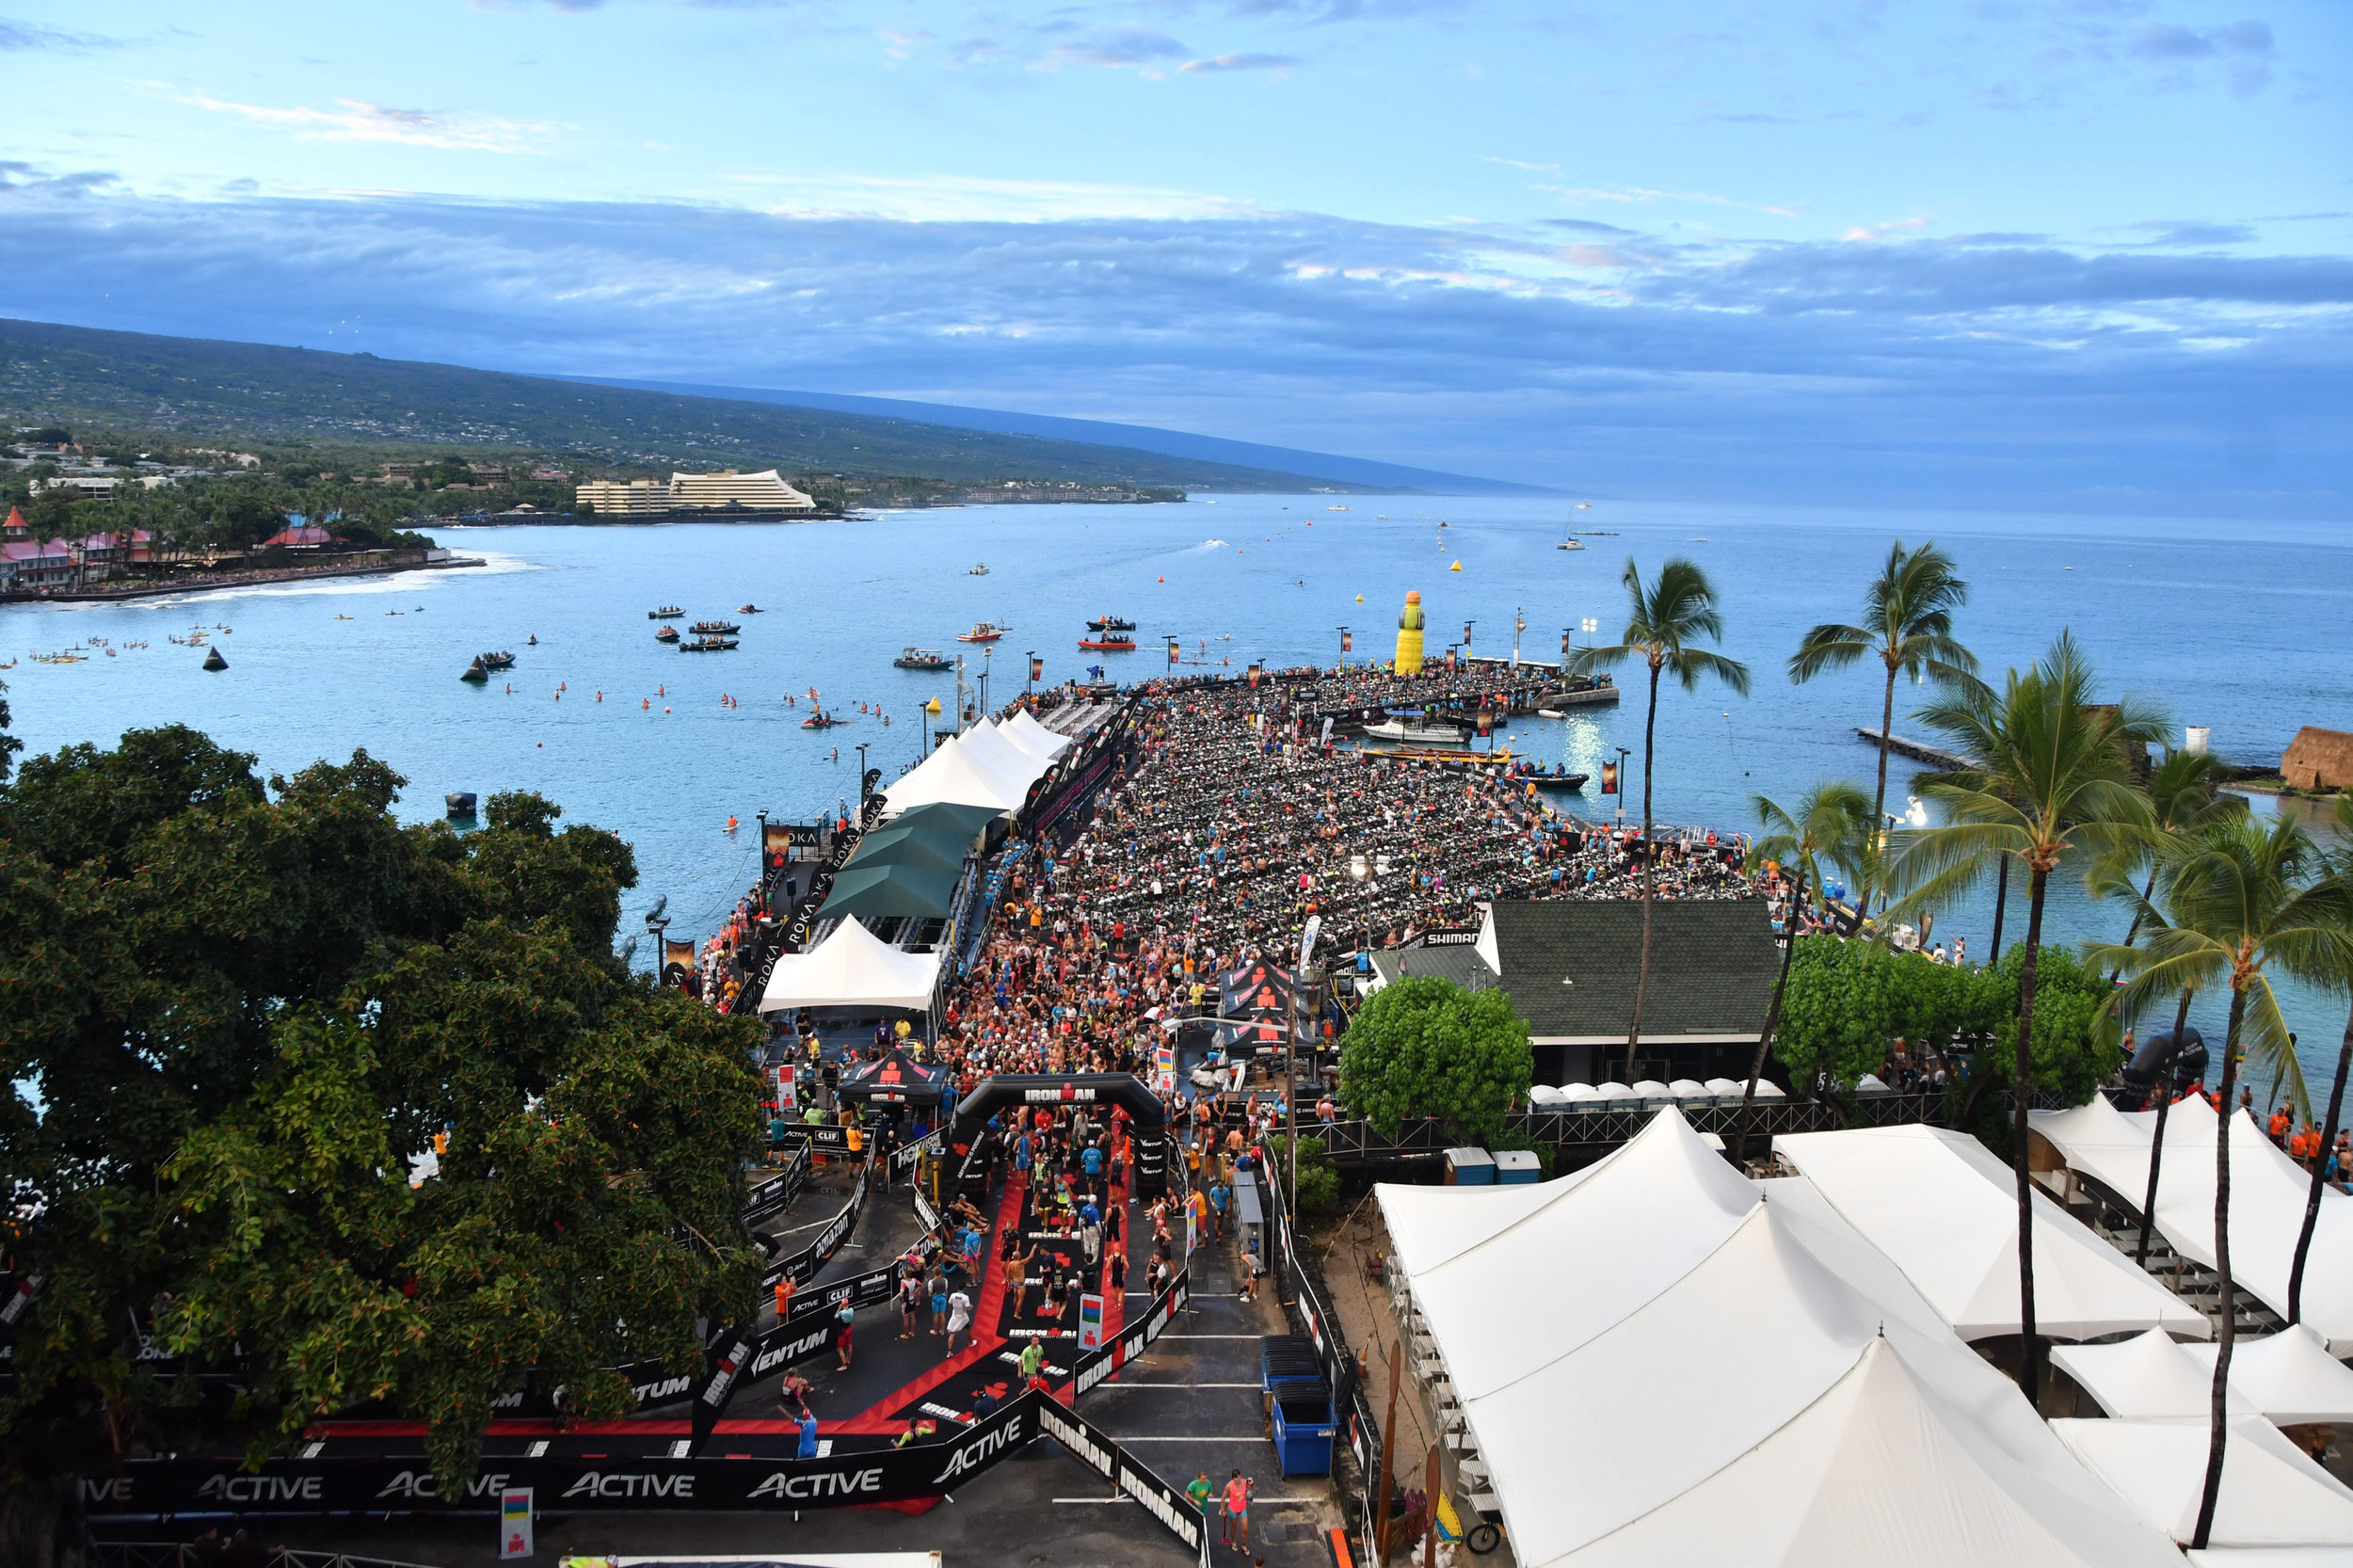 Coach_Terry_Wilson_Pursuit_of_The_Perfect_Race_IRONMAN_World_Championship_Kona_Elizabeth_James_3.JPG